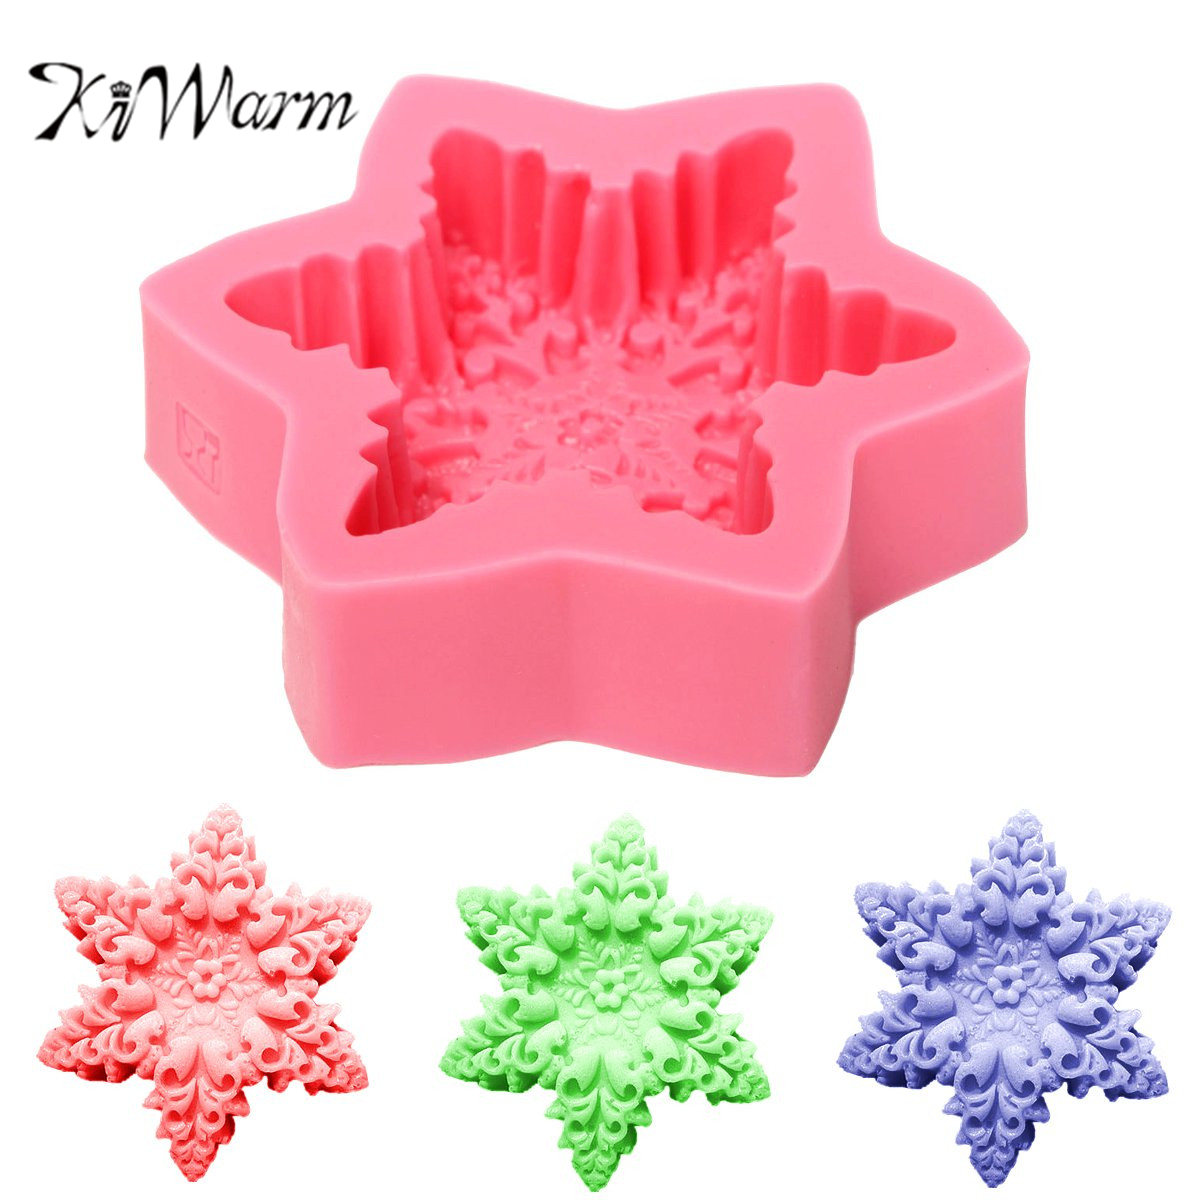 1PCS 10.5x2.4cm Durable Snowflake Design Silicone Mould Soap Mold DIY Crafts Handmade Soap Making Mould Tool Supplies 10.5x2.4cm cake molds for fondant